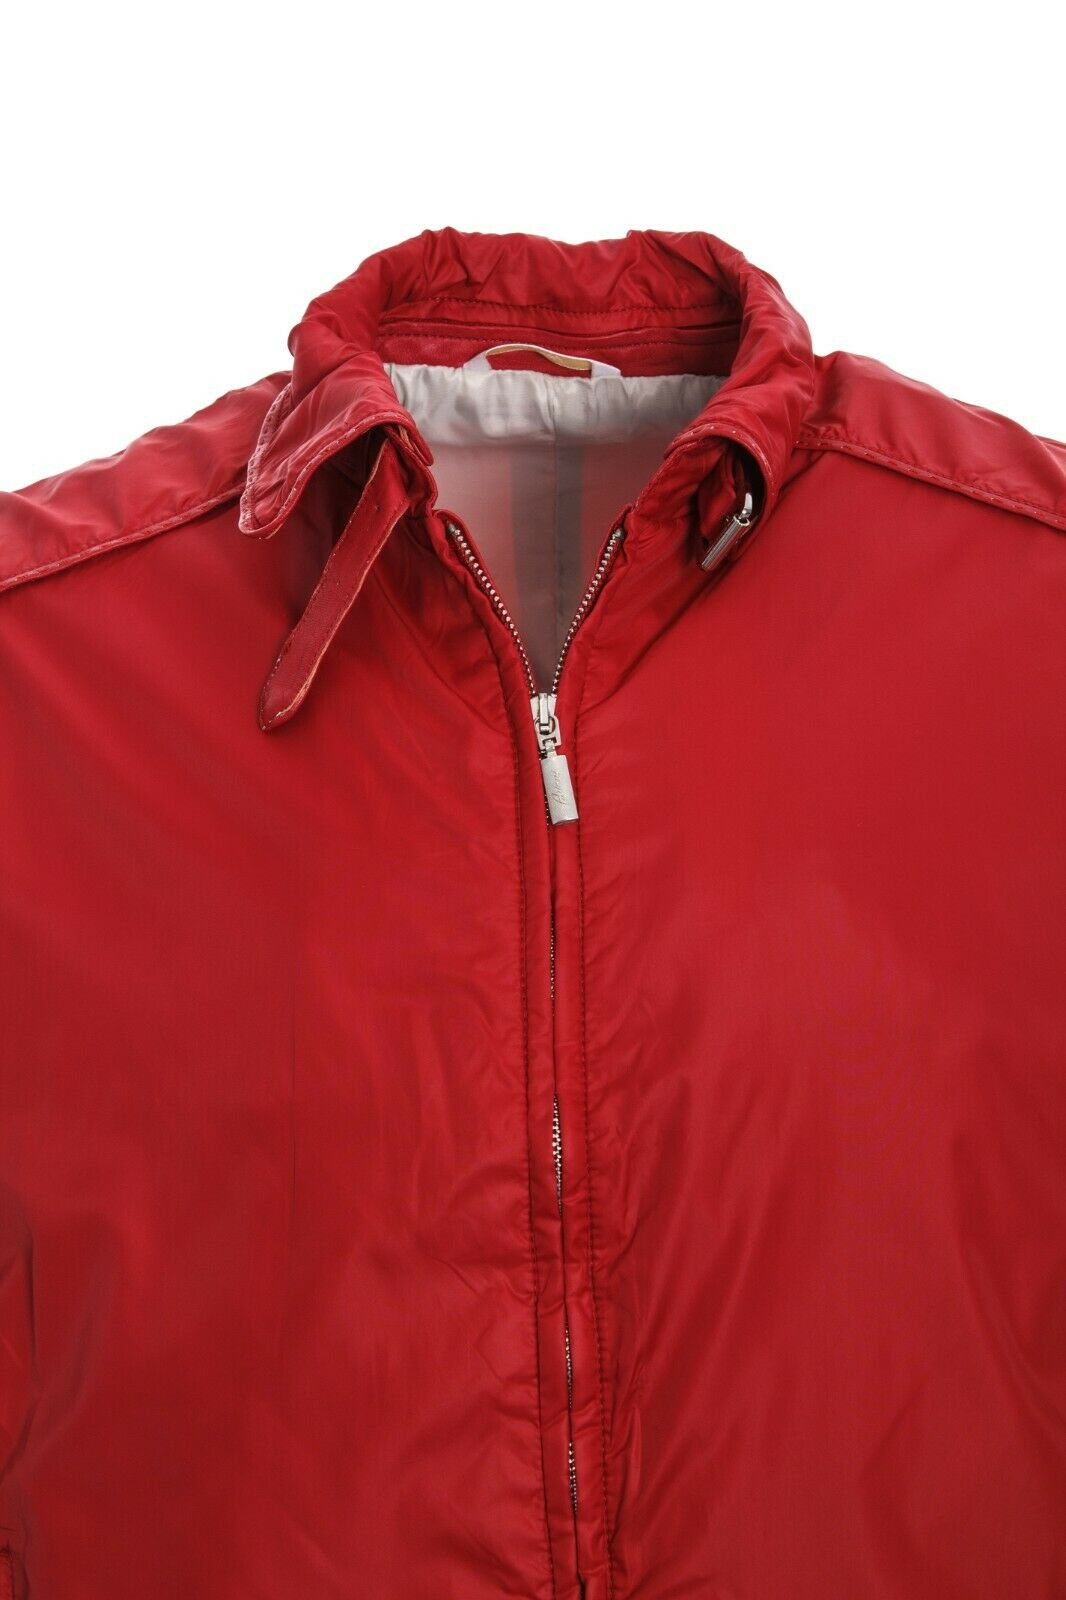 5450$ MENS BRIONI BLOUSON RED SILK LINING LEATHER… - image 2